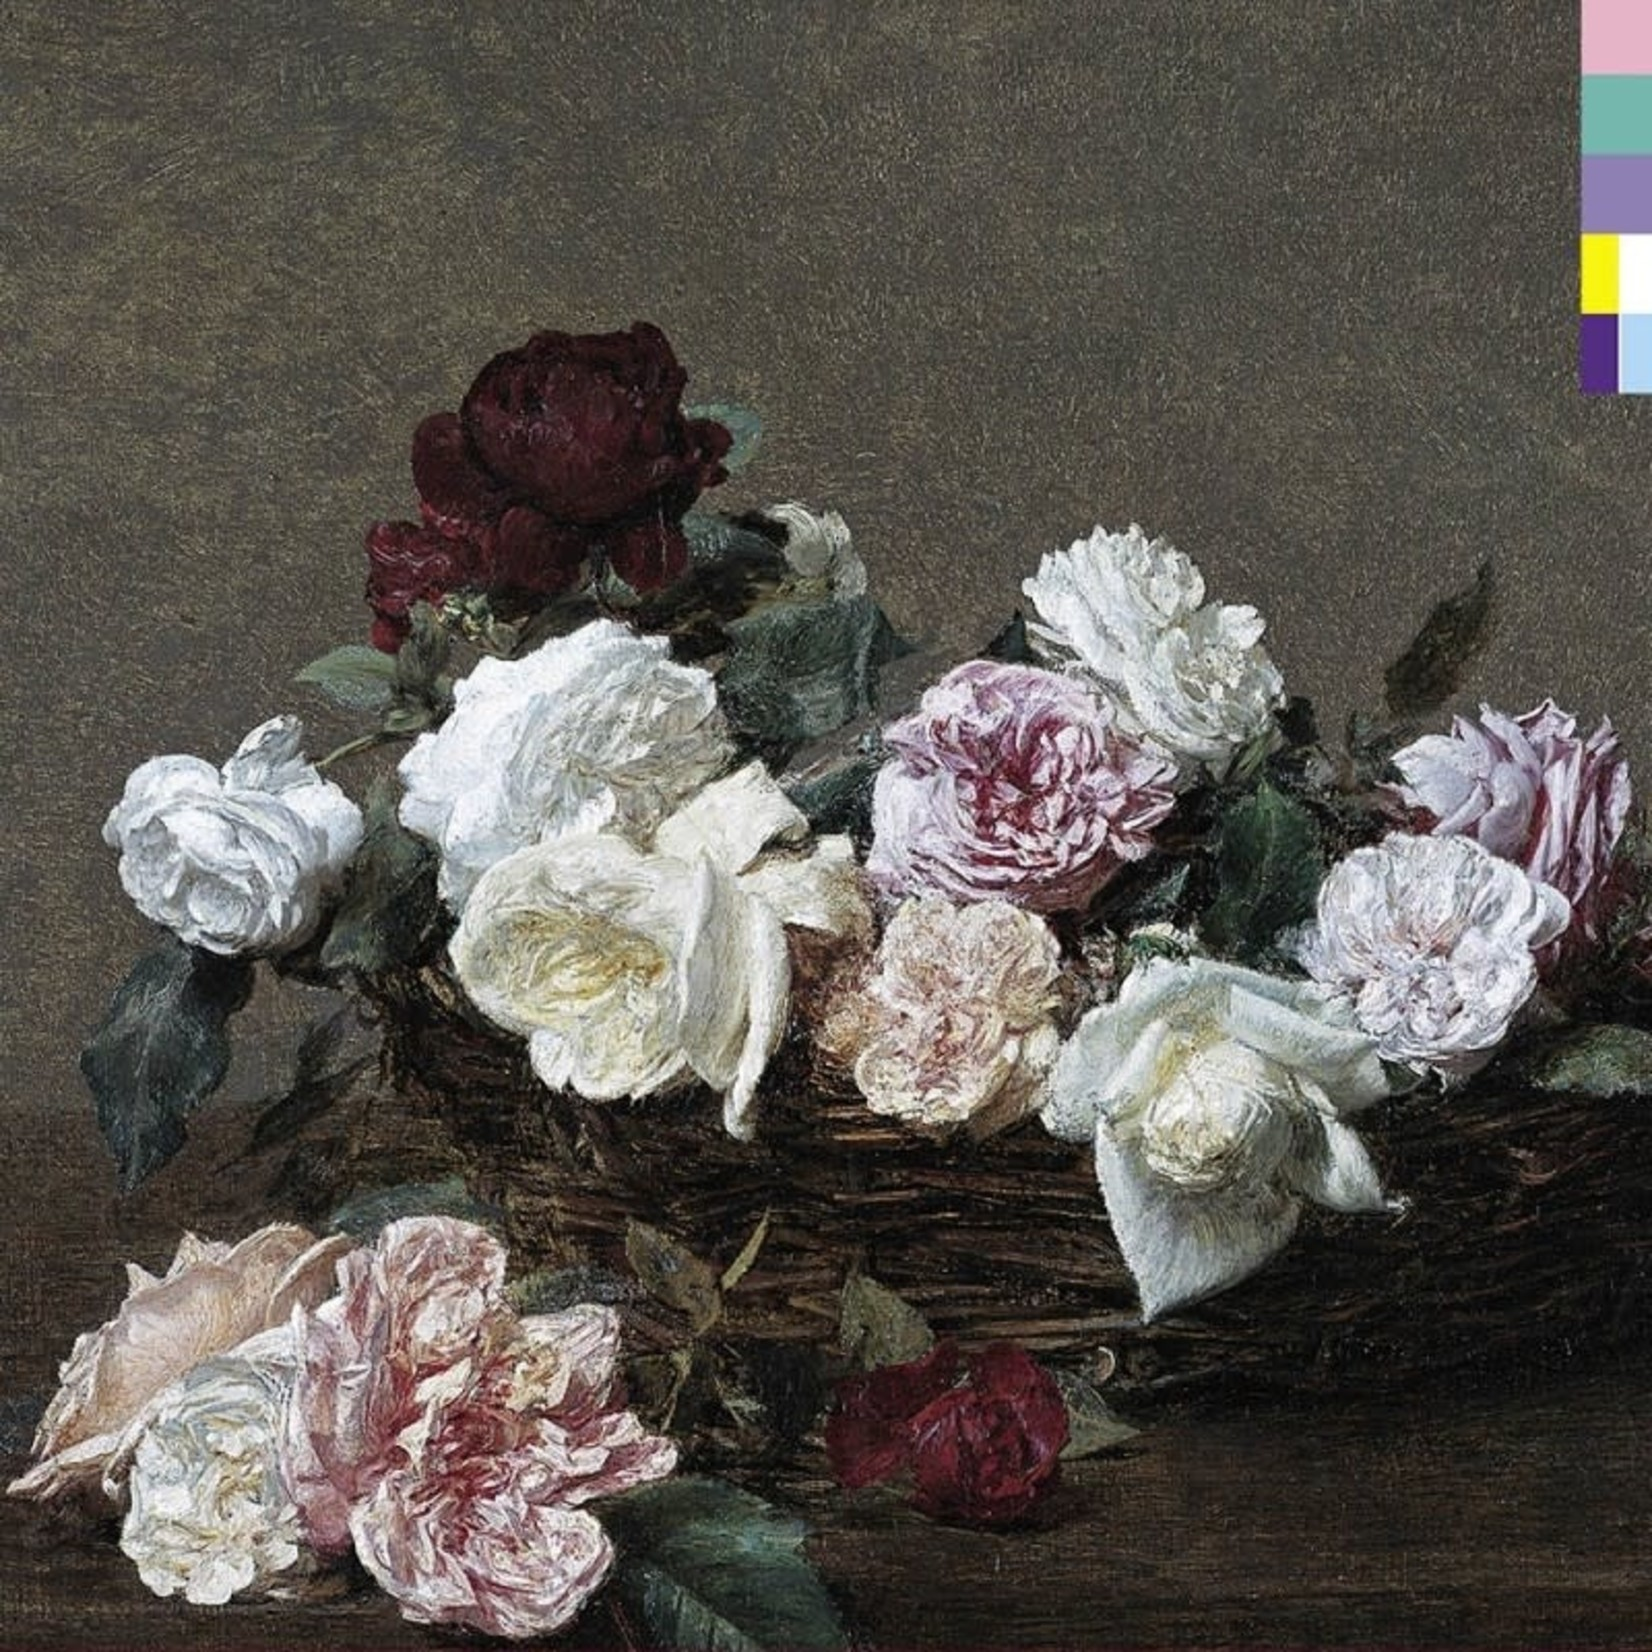 [New] New Order: Power, Corruption & Lies